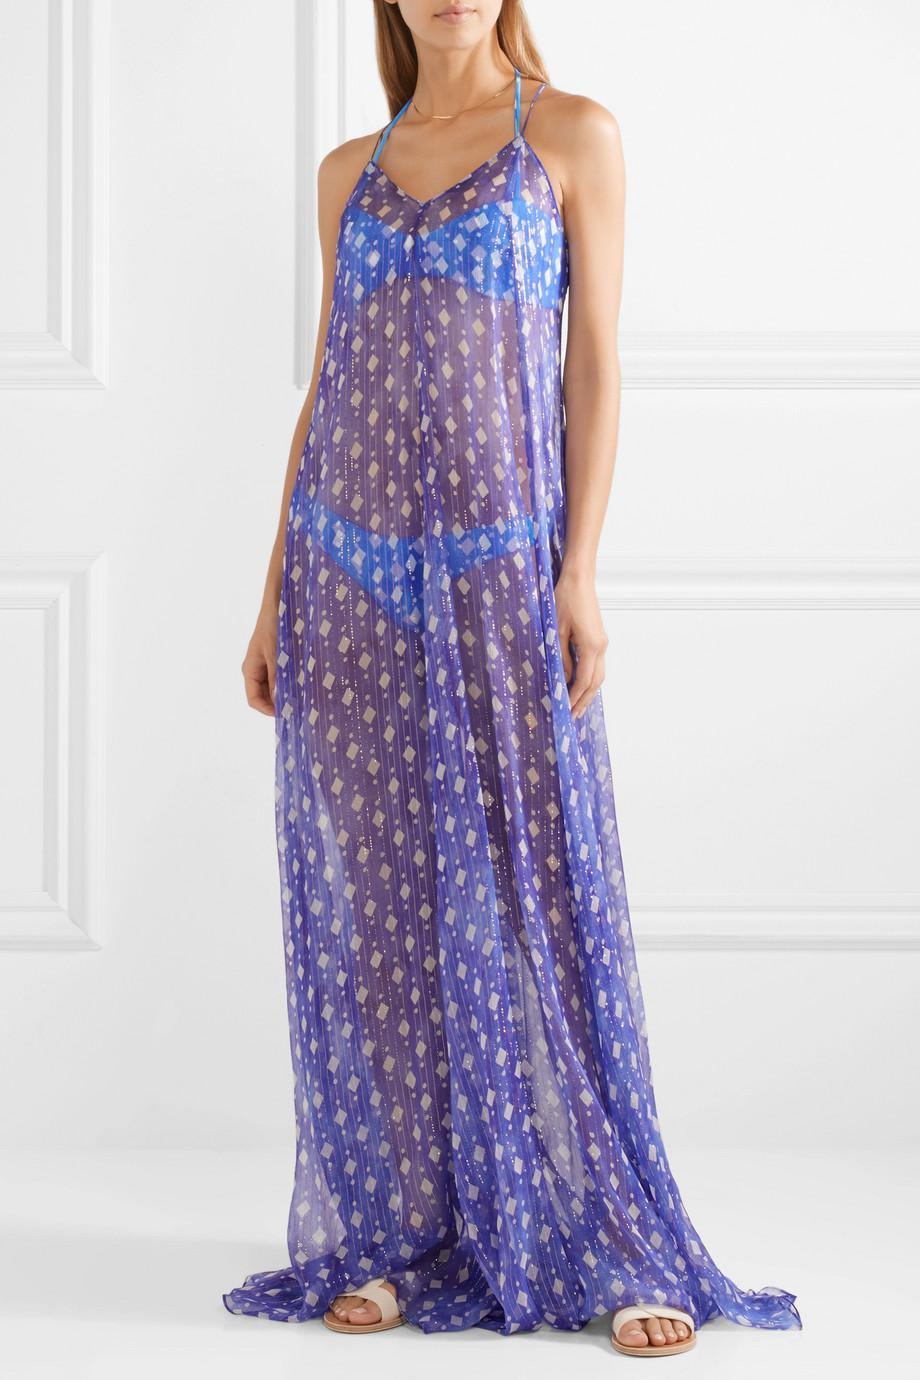 Clearance Online Amazon Ares Printed Metallic Silk-blend Chiffon Coverup - Blue Caroline Constas Outlet For Sale sCujH80aU